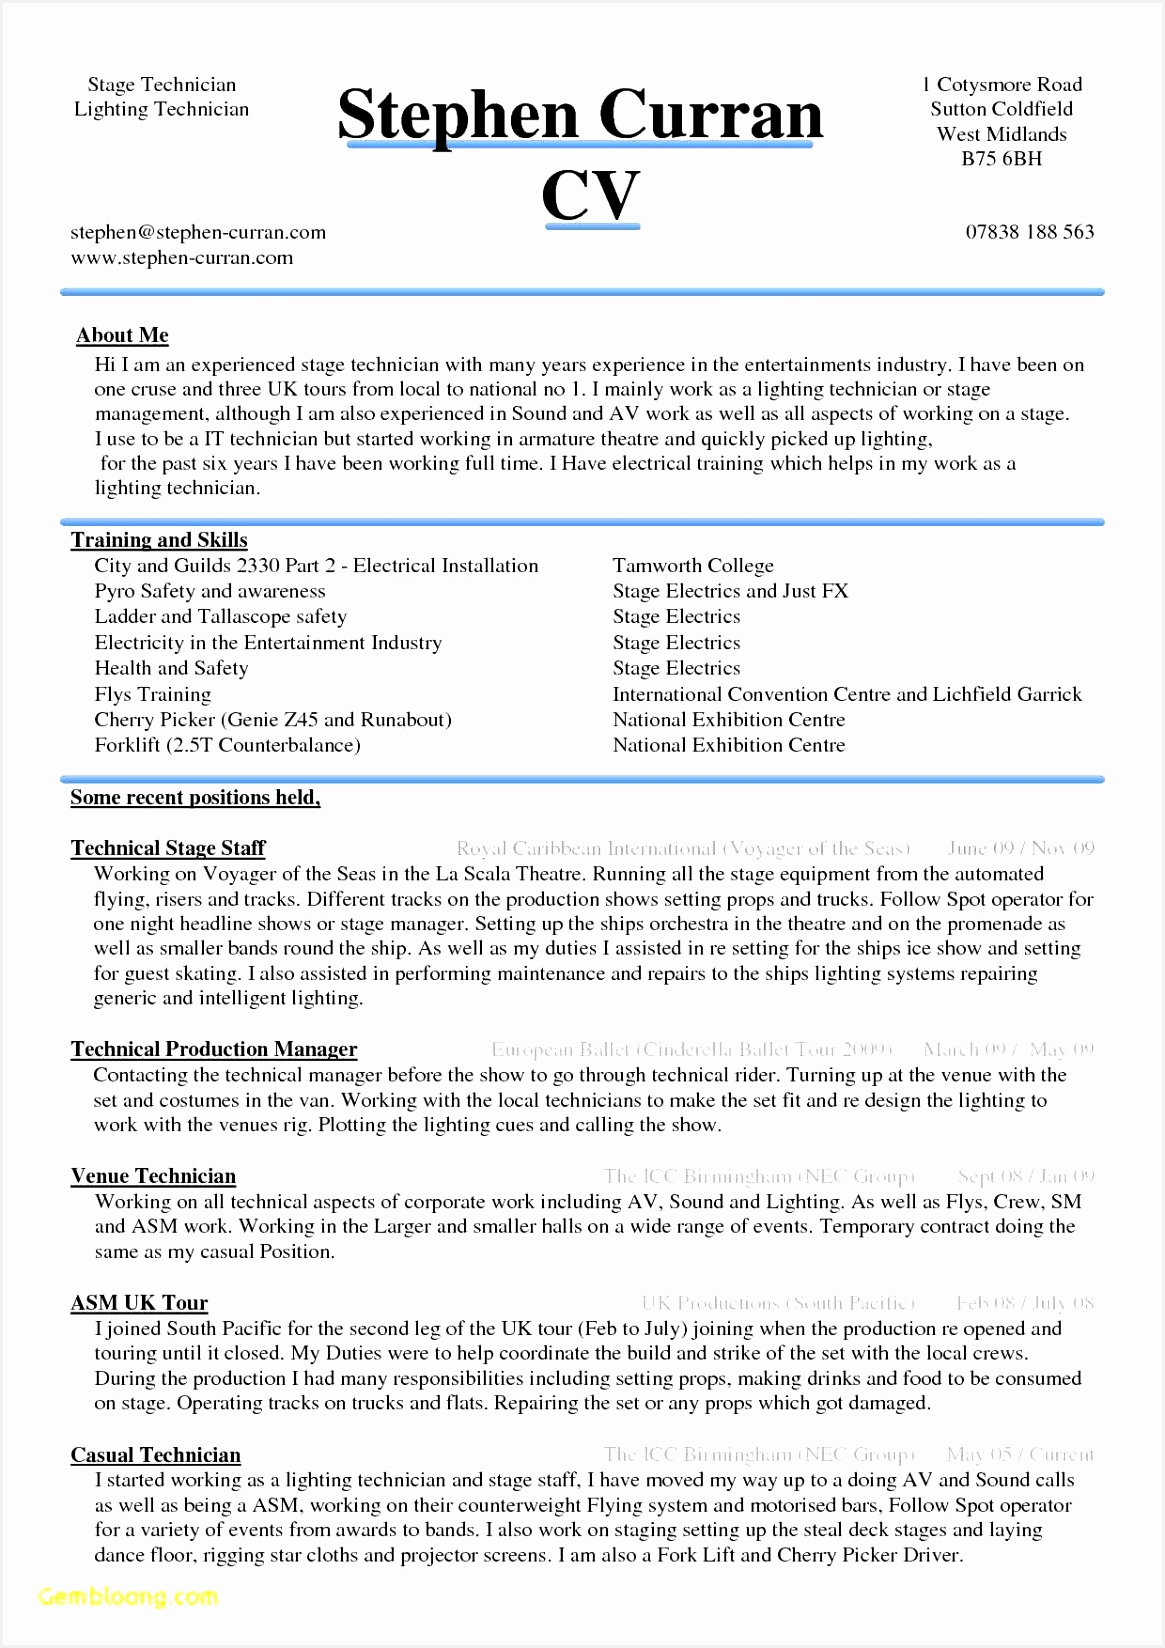 Cv Templates Cool Uvxtq Unique Microsoft Word Resume Templates 2010 – Cv Layout Template Word New Of 6 Cv Templates Cool